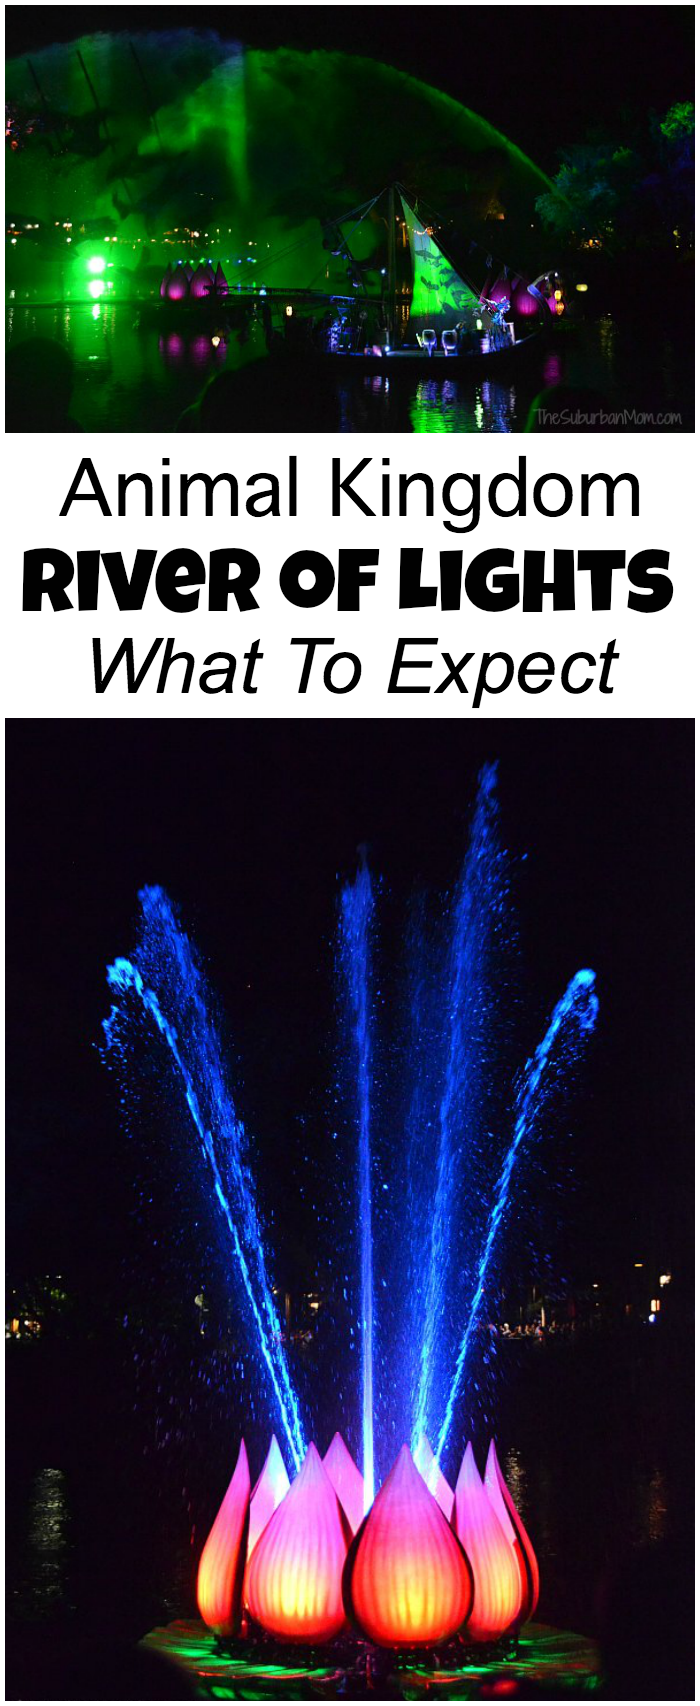 Animal Kingdom River Of Lights